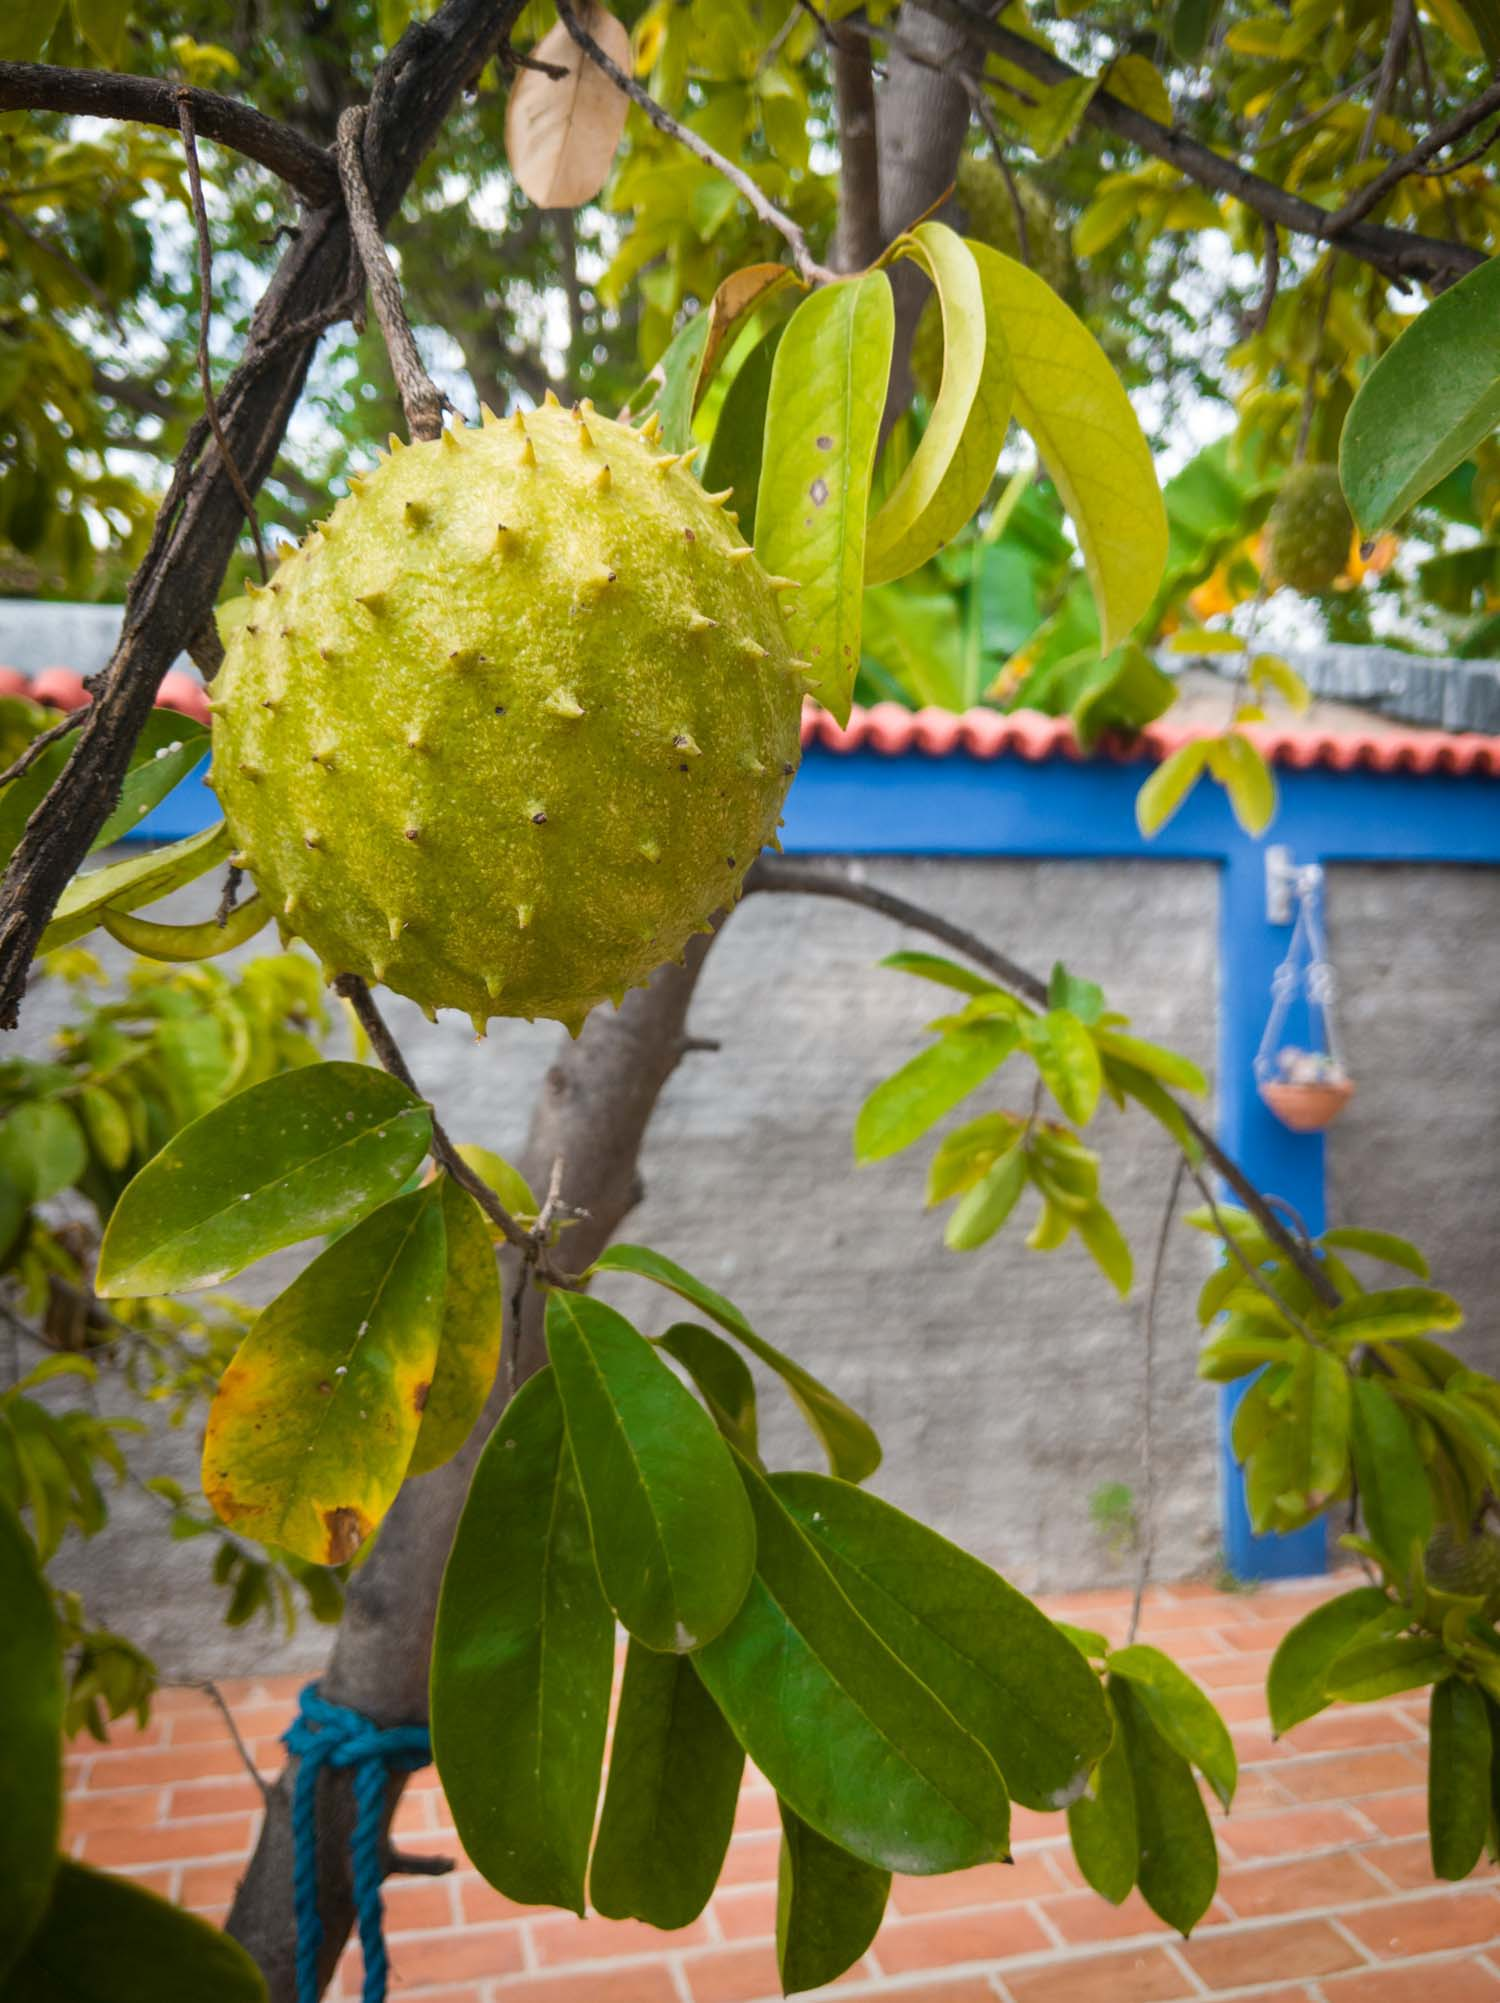 Soursop Jamaican fruits on a tree in a backyard setting.